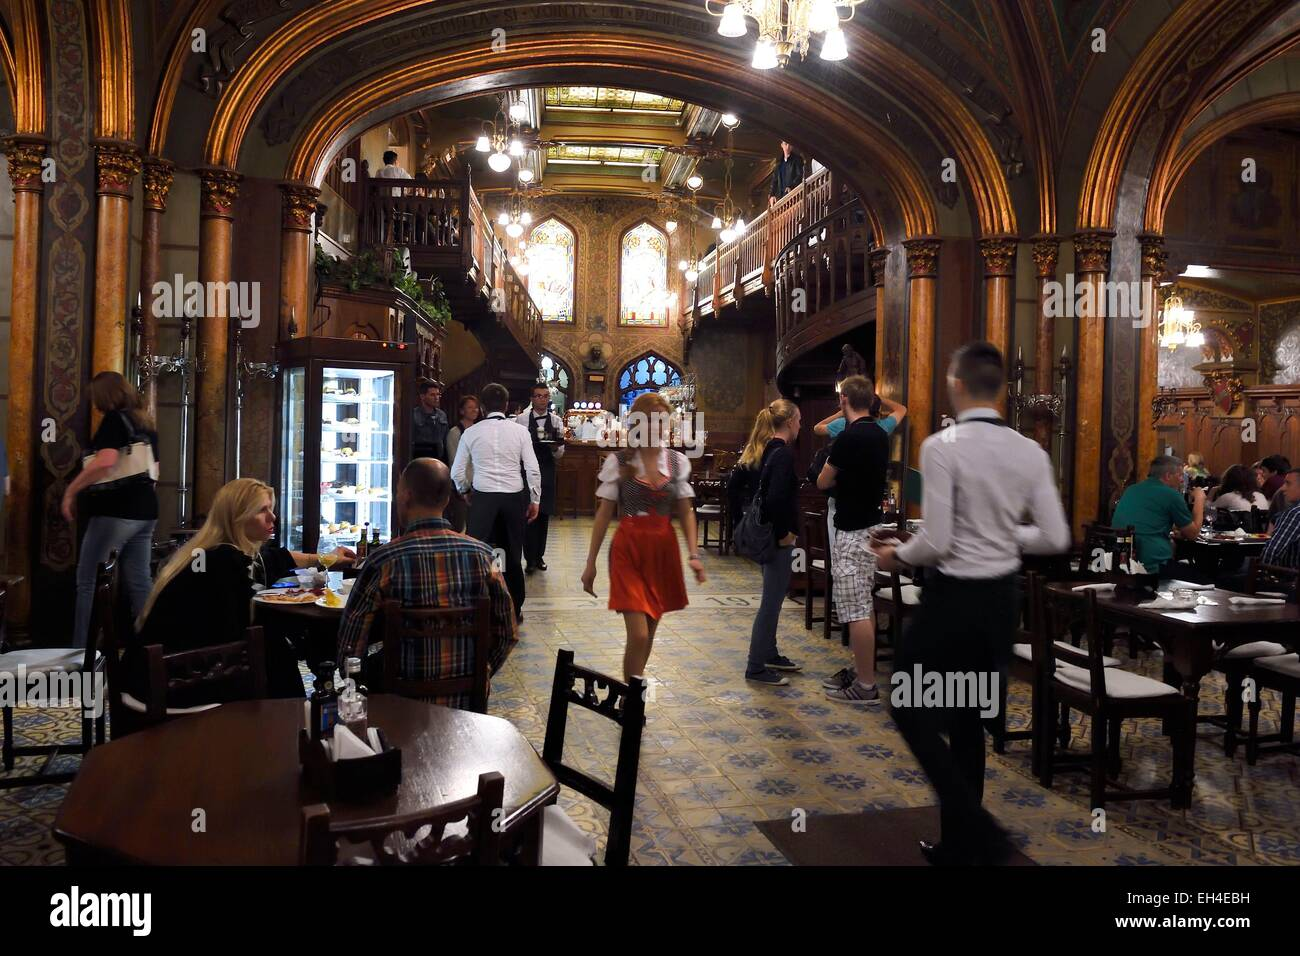 Romania, Bucharest, historic center, the famous brewery Caru cu bere created in 1899 in the Lipscani neighborhood - Stock Image